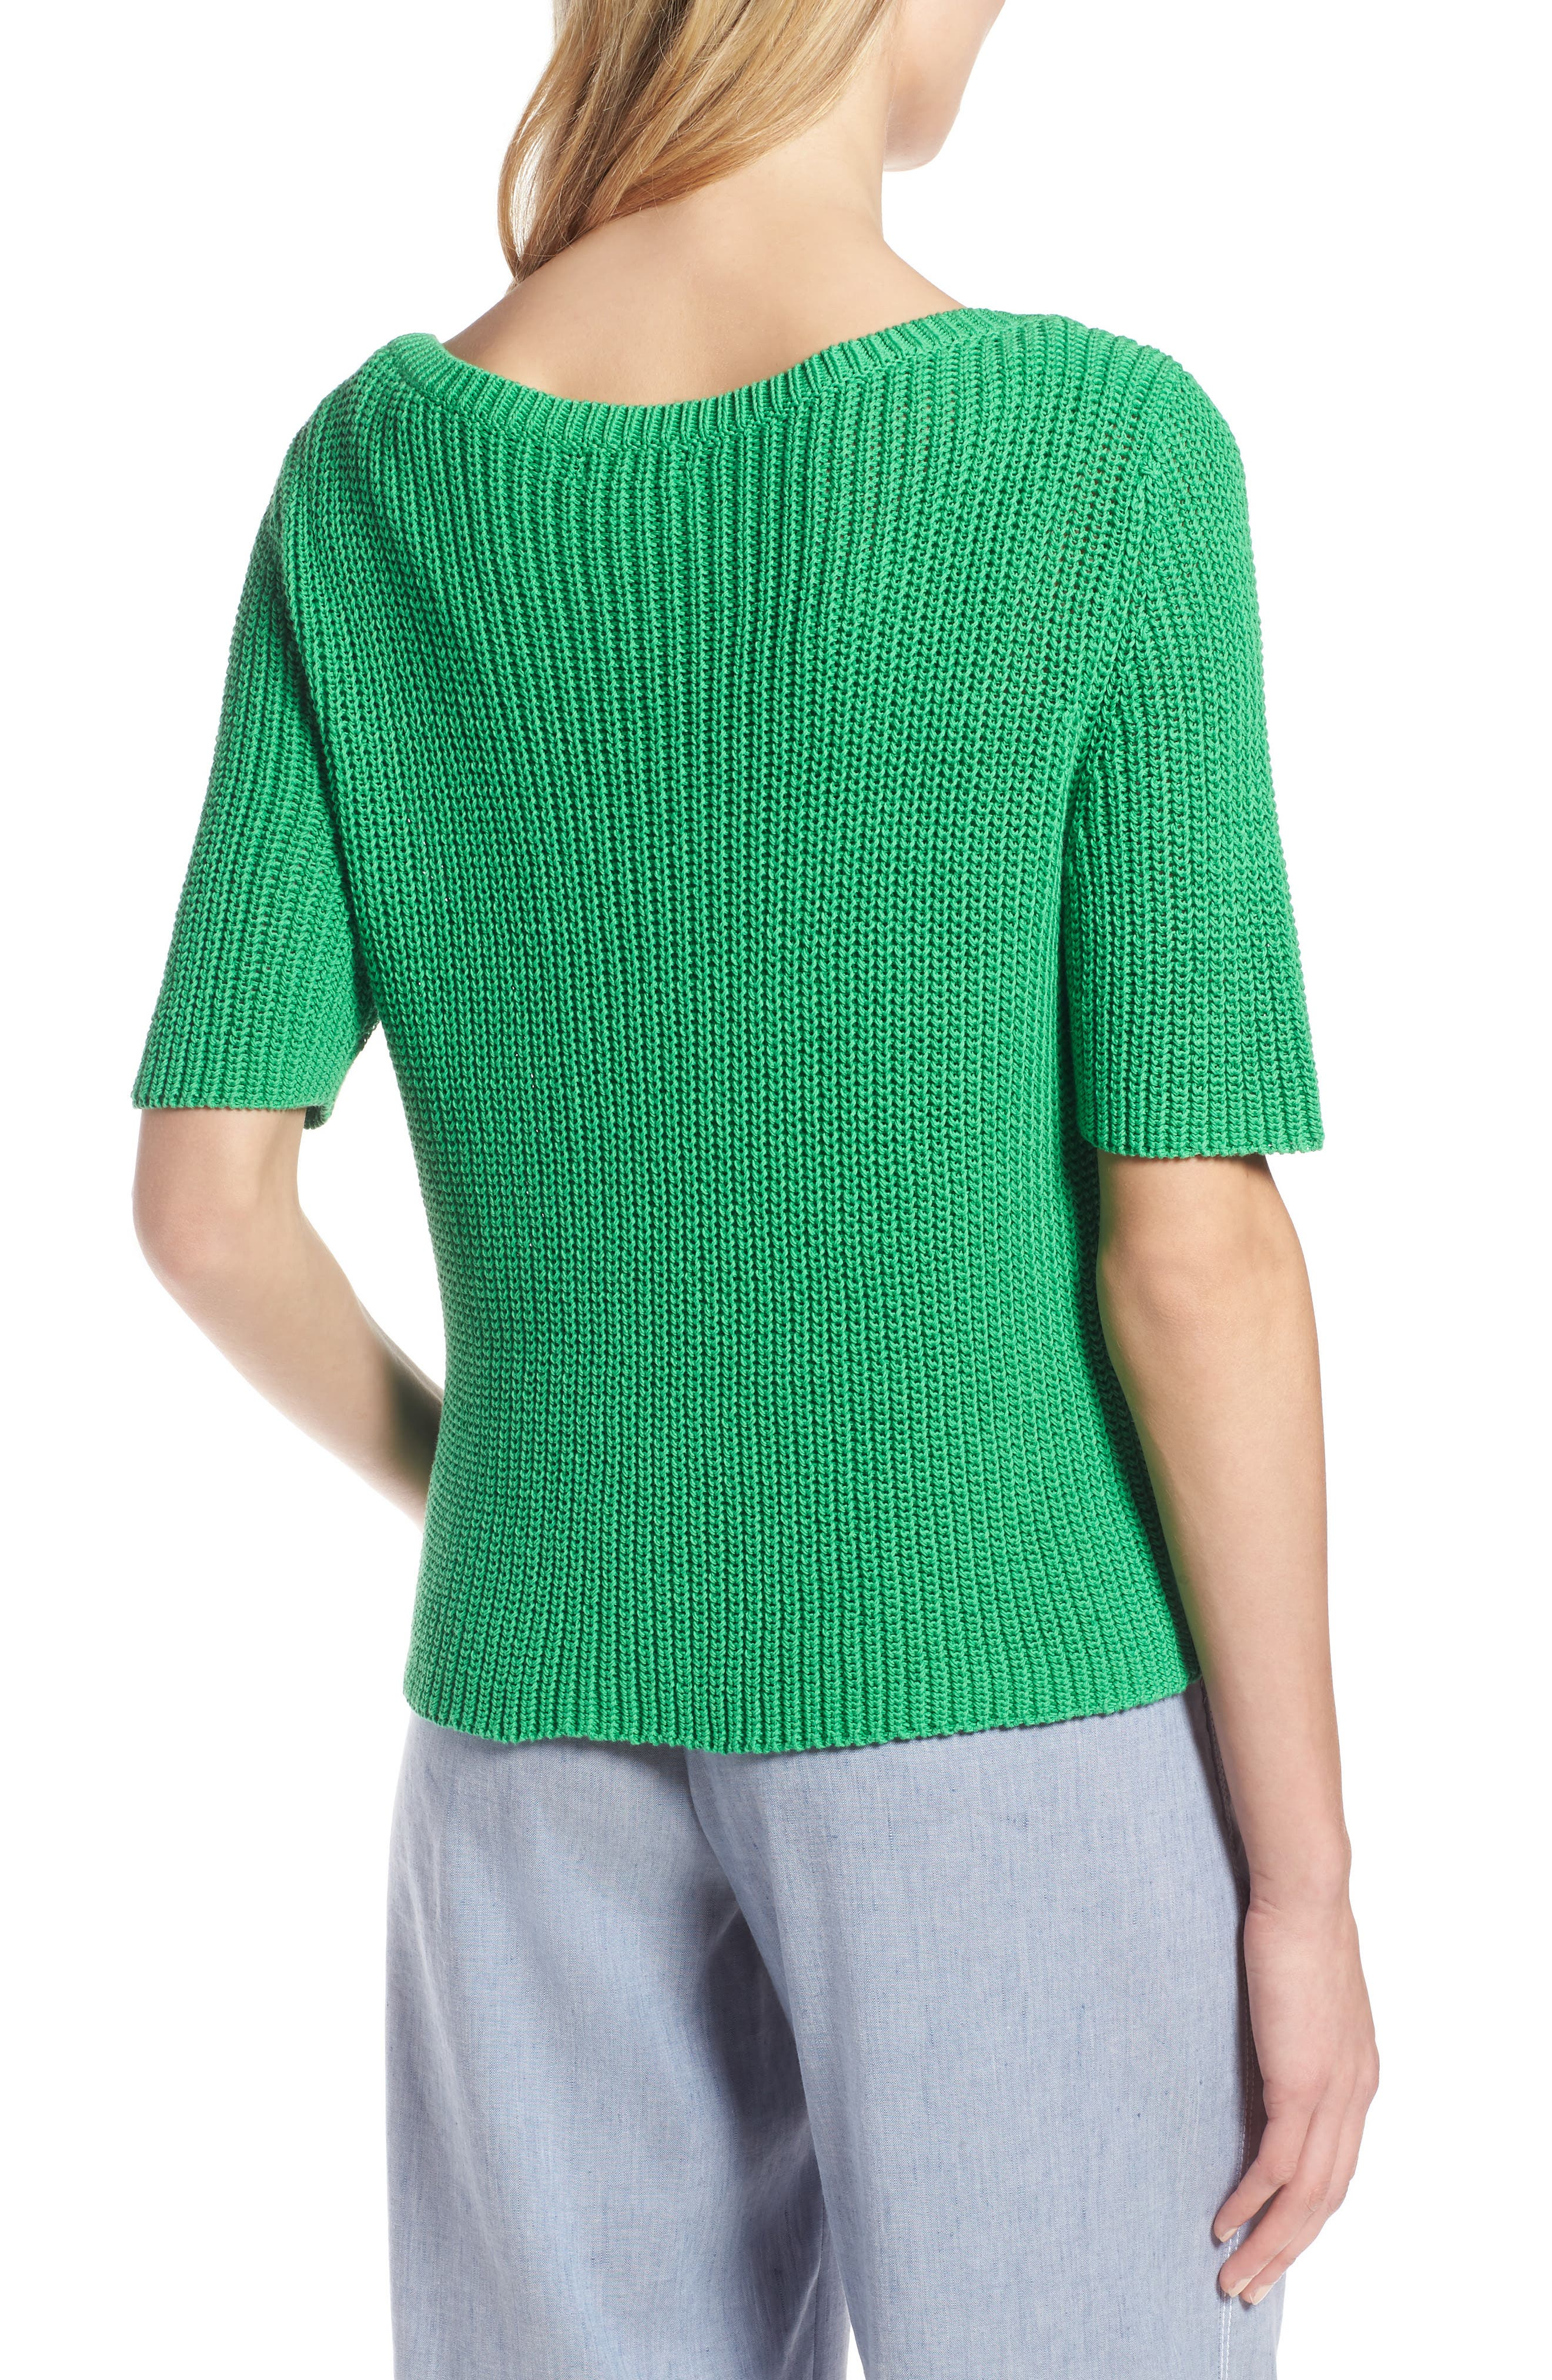 Shaker Stitch Cotton Sweater,                             Alternate thumbnail 2, color,                             Green Kelly